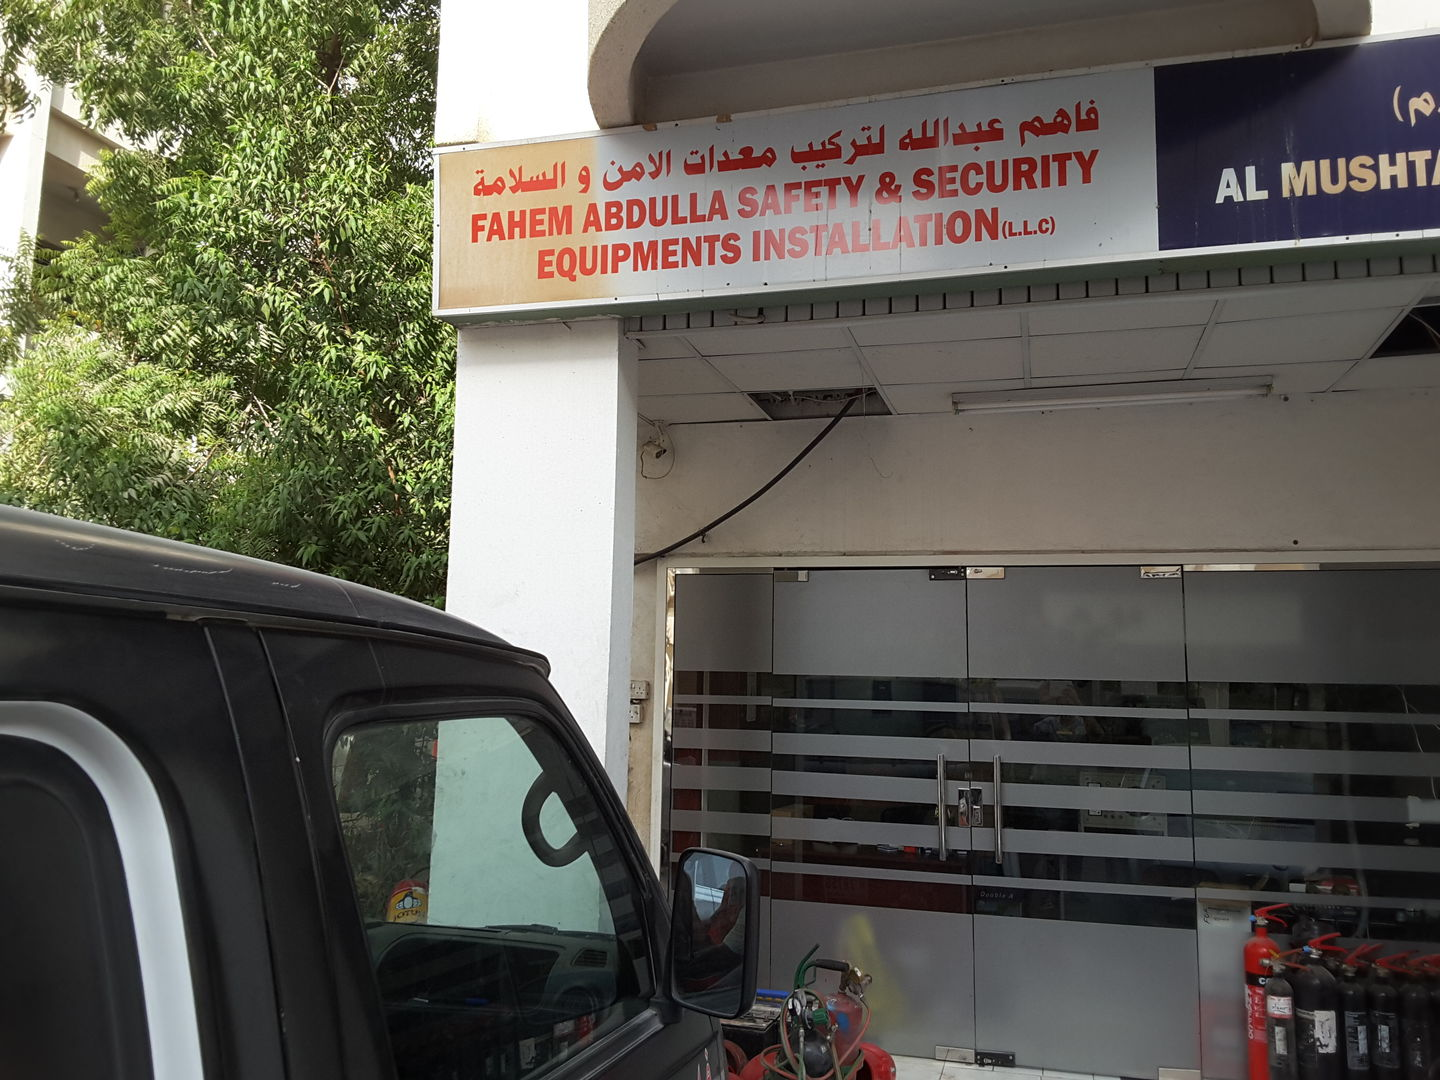 HiDubai-business-fahem-abdullah-safety-and-security-equipment-home-safety-security-al-karama-dubai-2